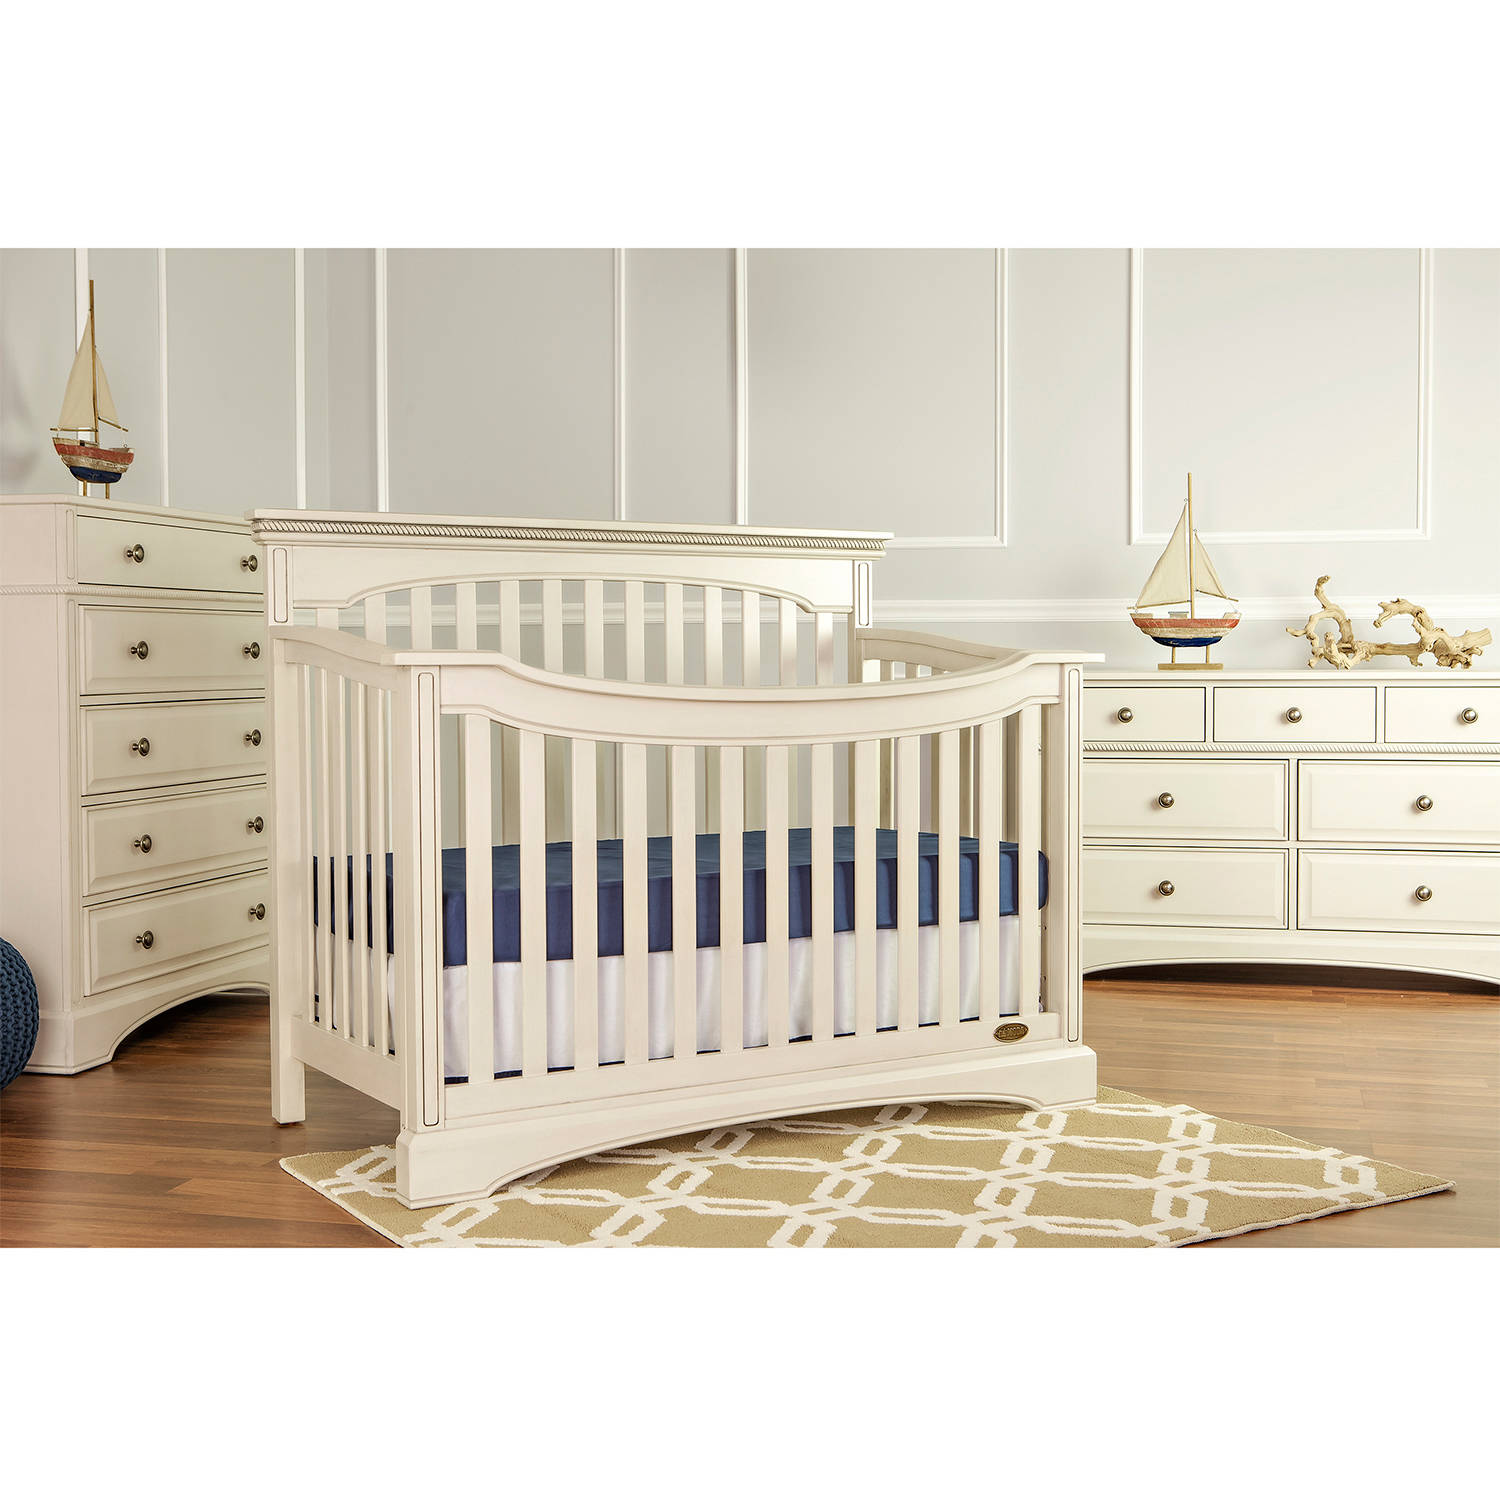 Mia Moda Catalina Flat Top Fixed Side Crib, Antique White